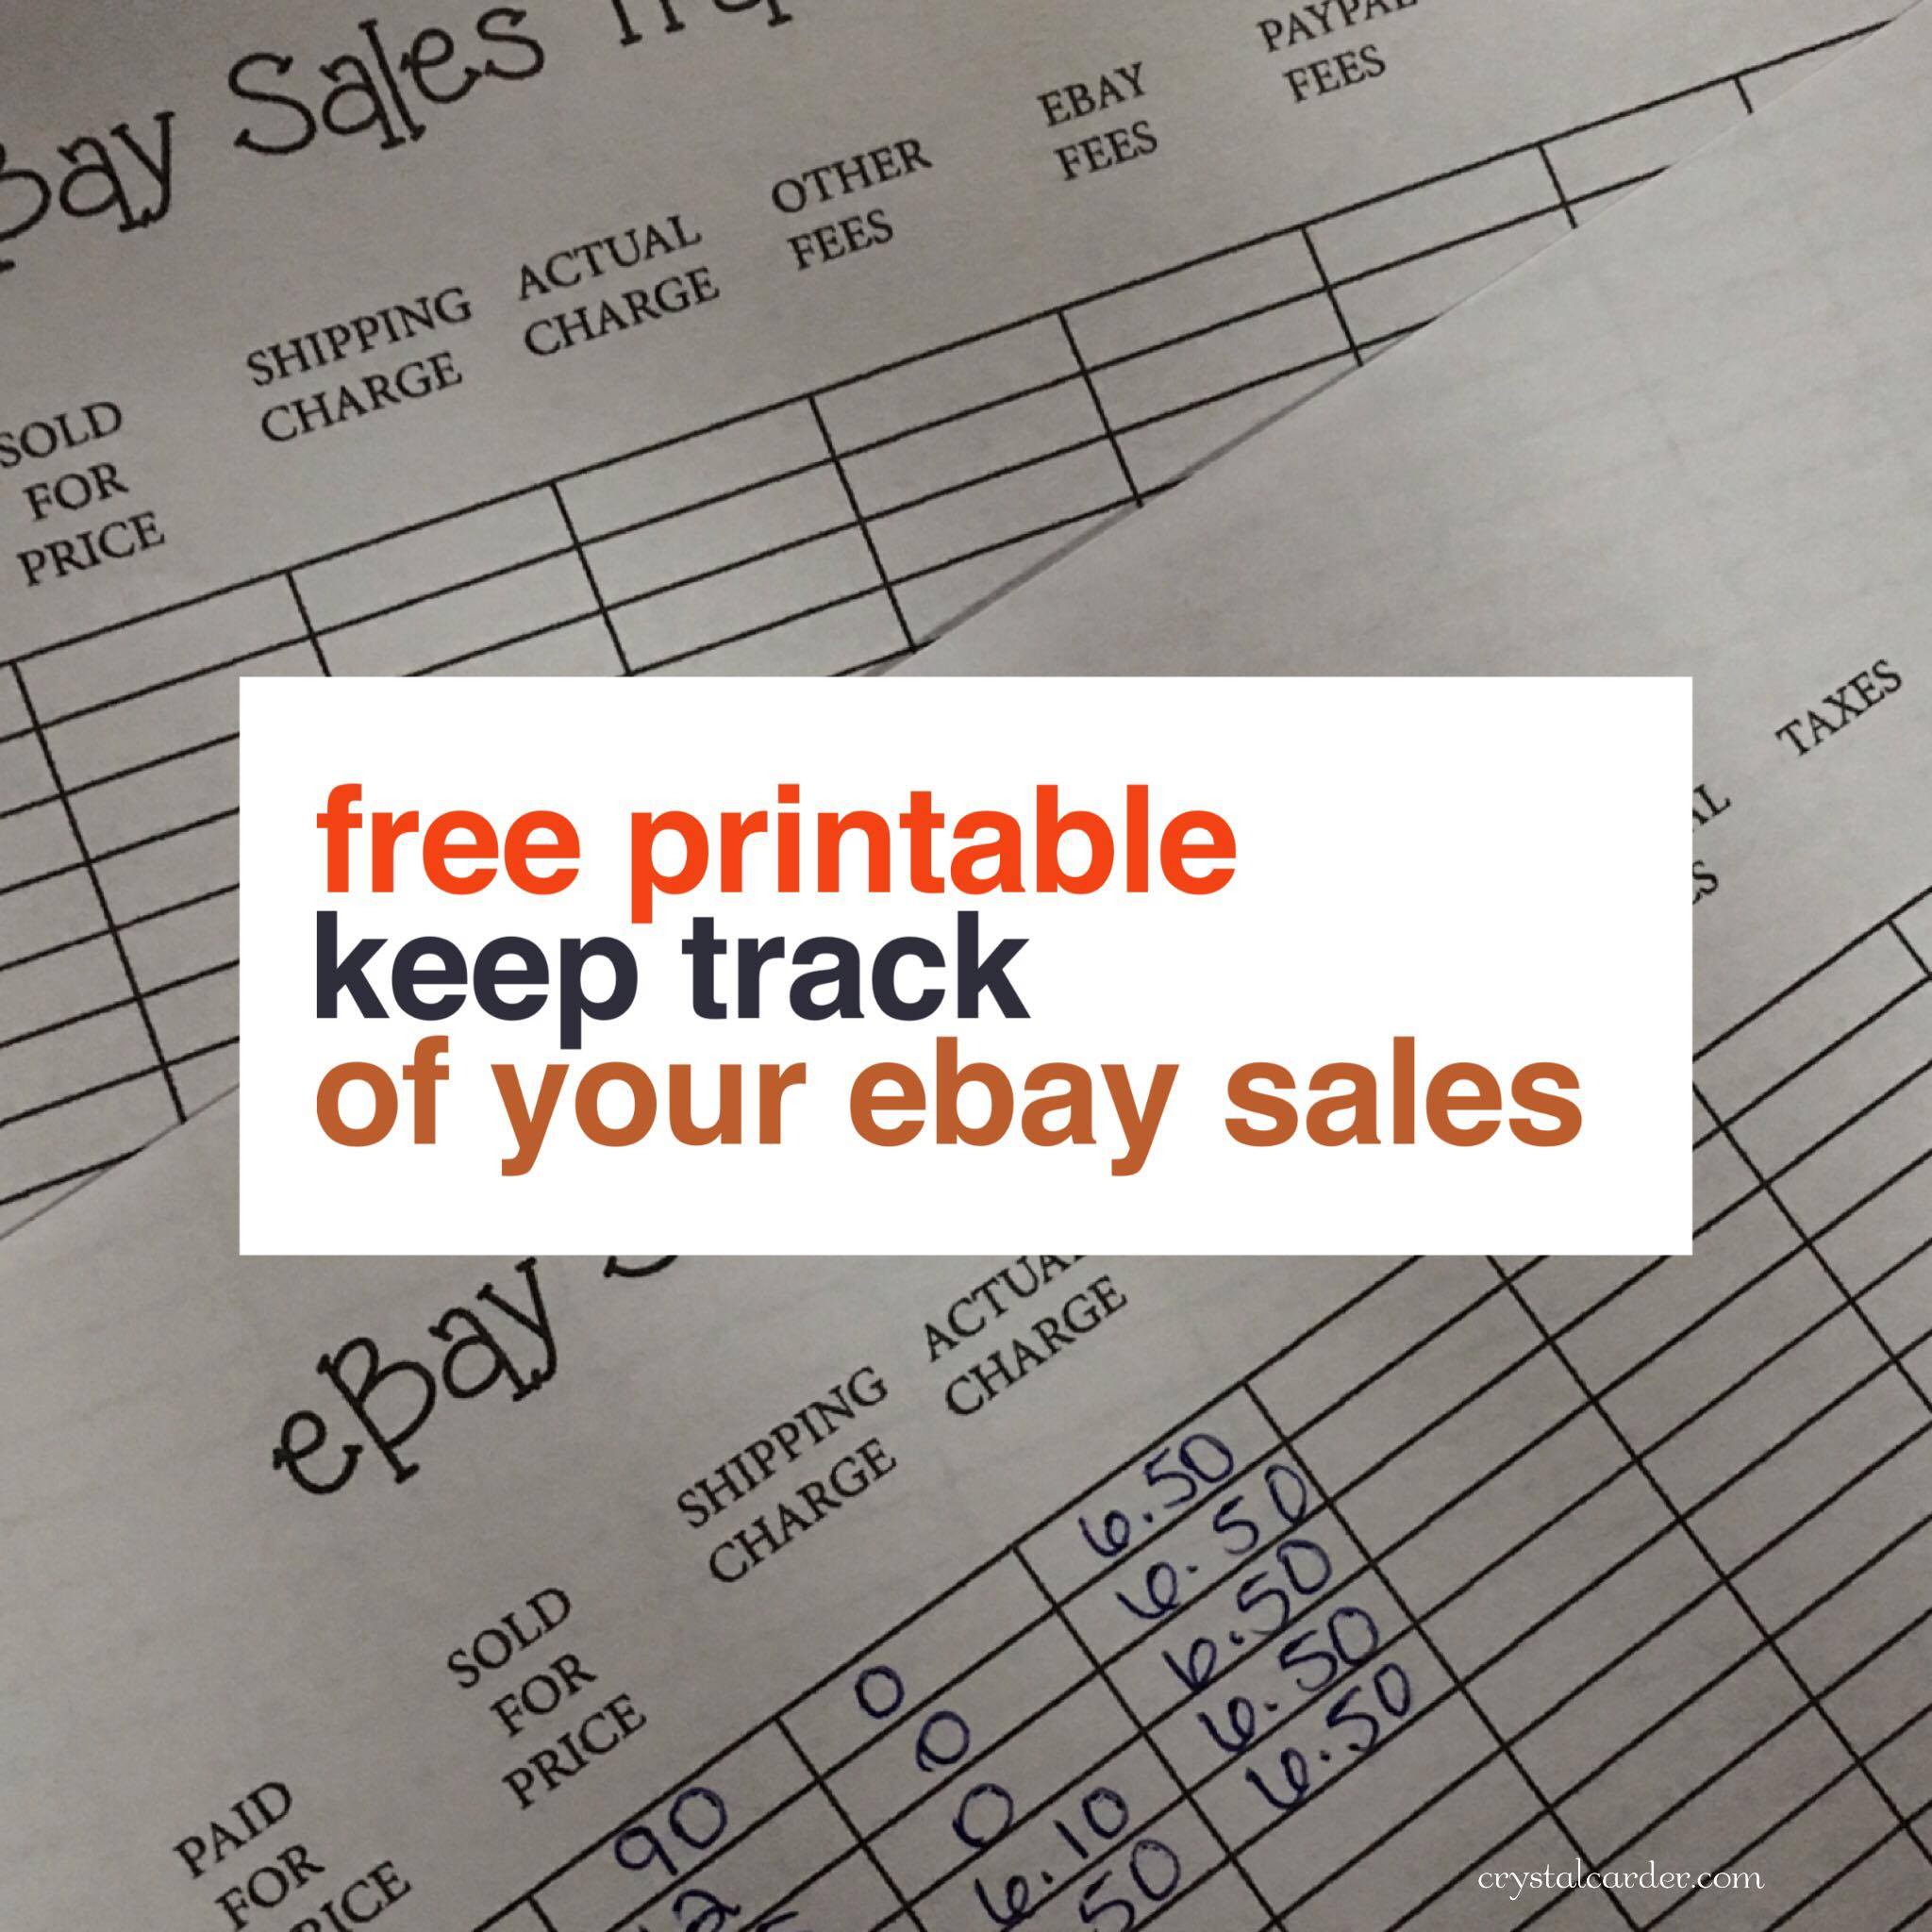 Free Ebay Sales Tracker Printable   Crystal Carder To Ebay Sales Tracking Spreadsheet